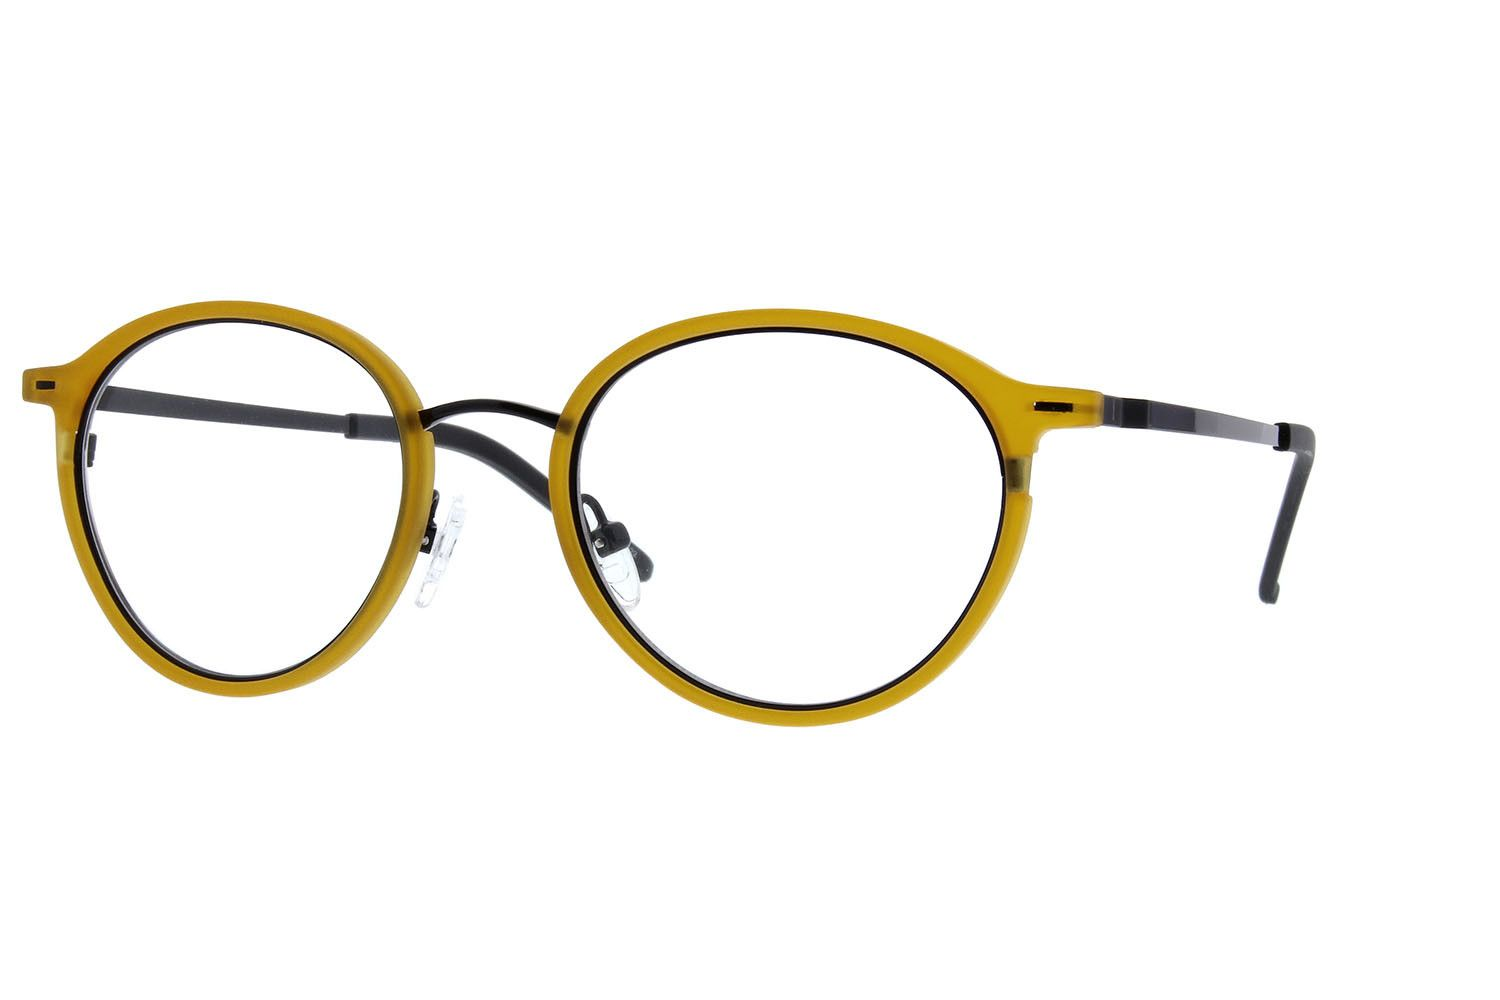 538343f9d5 Yellow Round Glasses  7810622